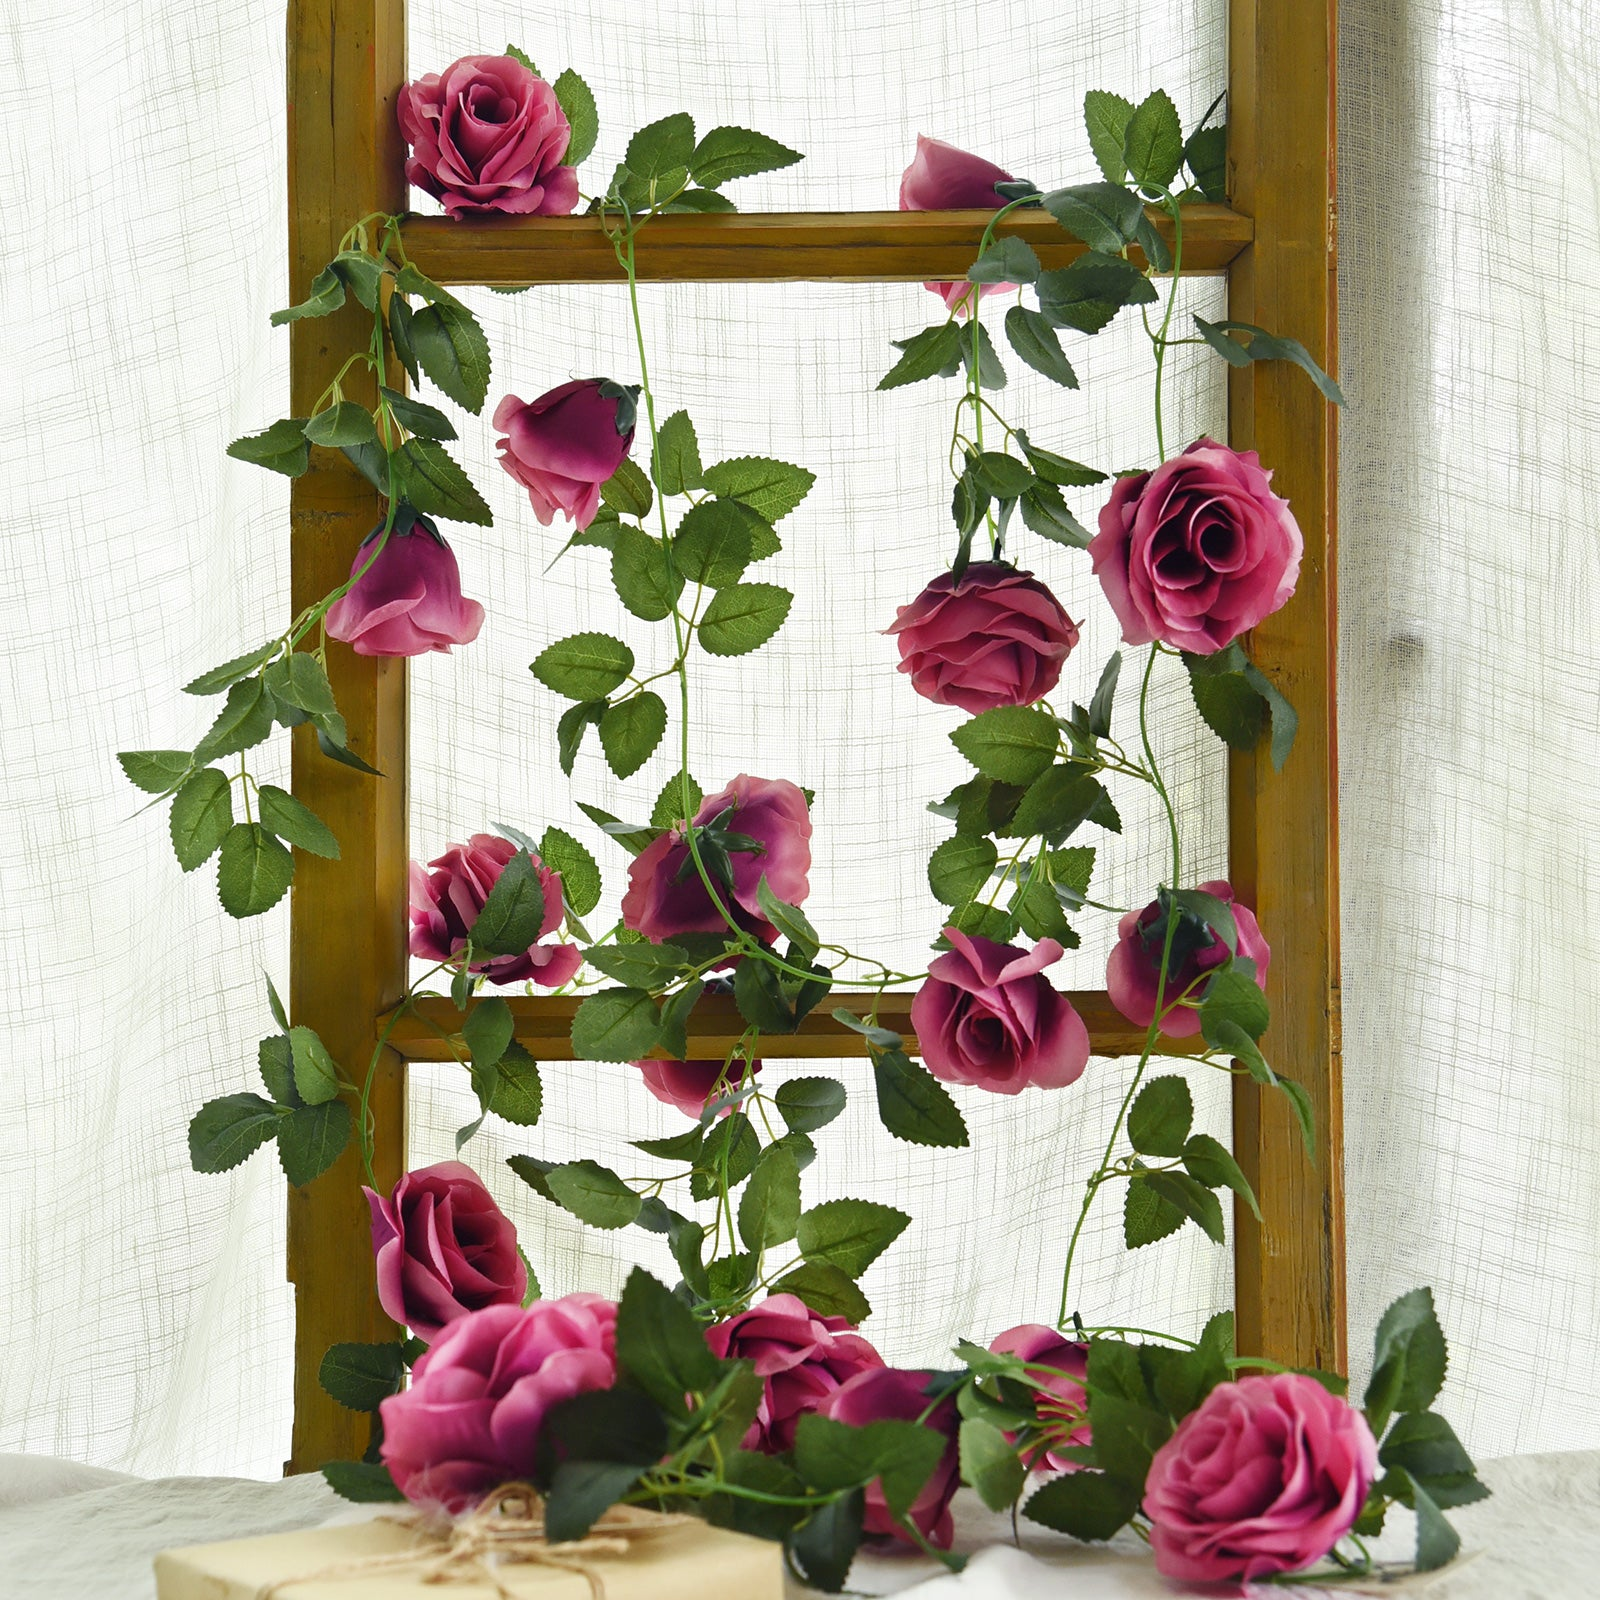 2 Pcs Raspberry Pink Artificial Silk Rose Garland Vine Plant Flower Leaves